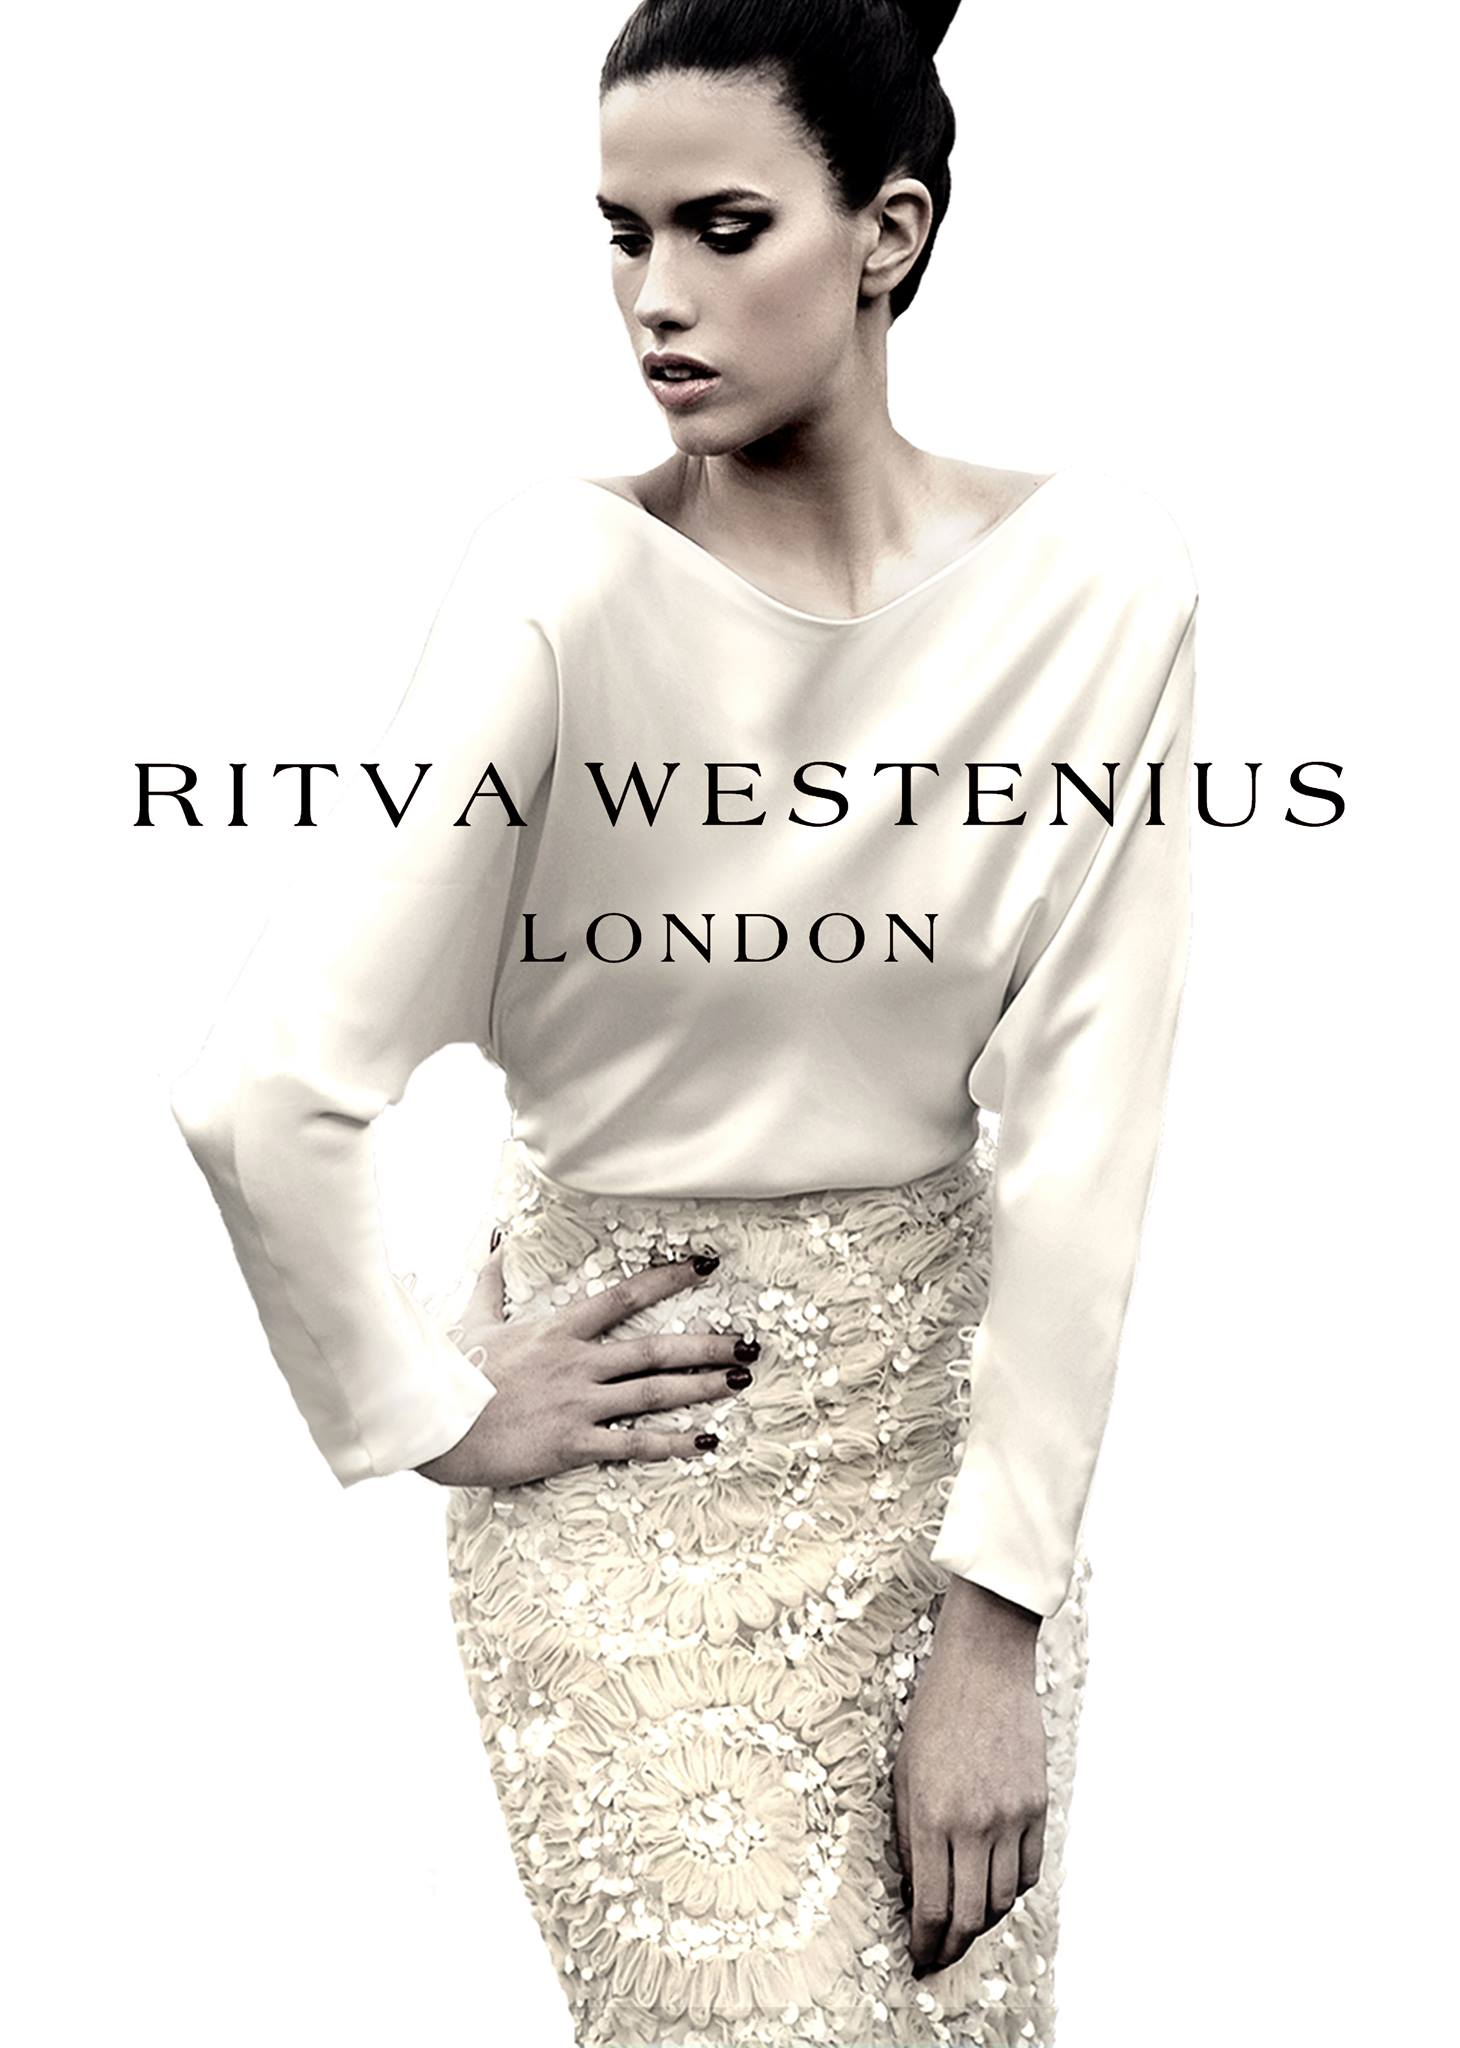 Ritva Westenius London